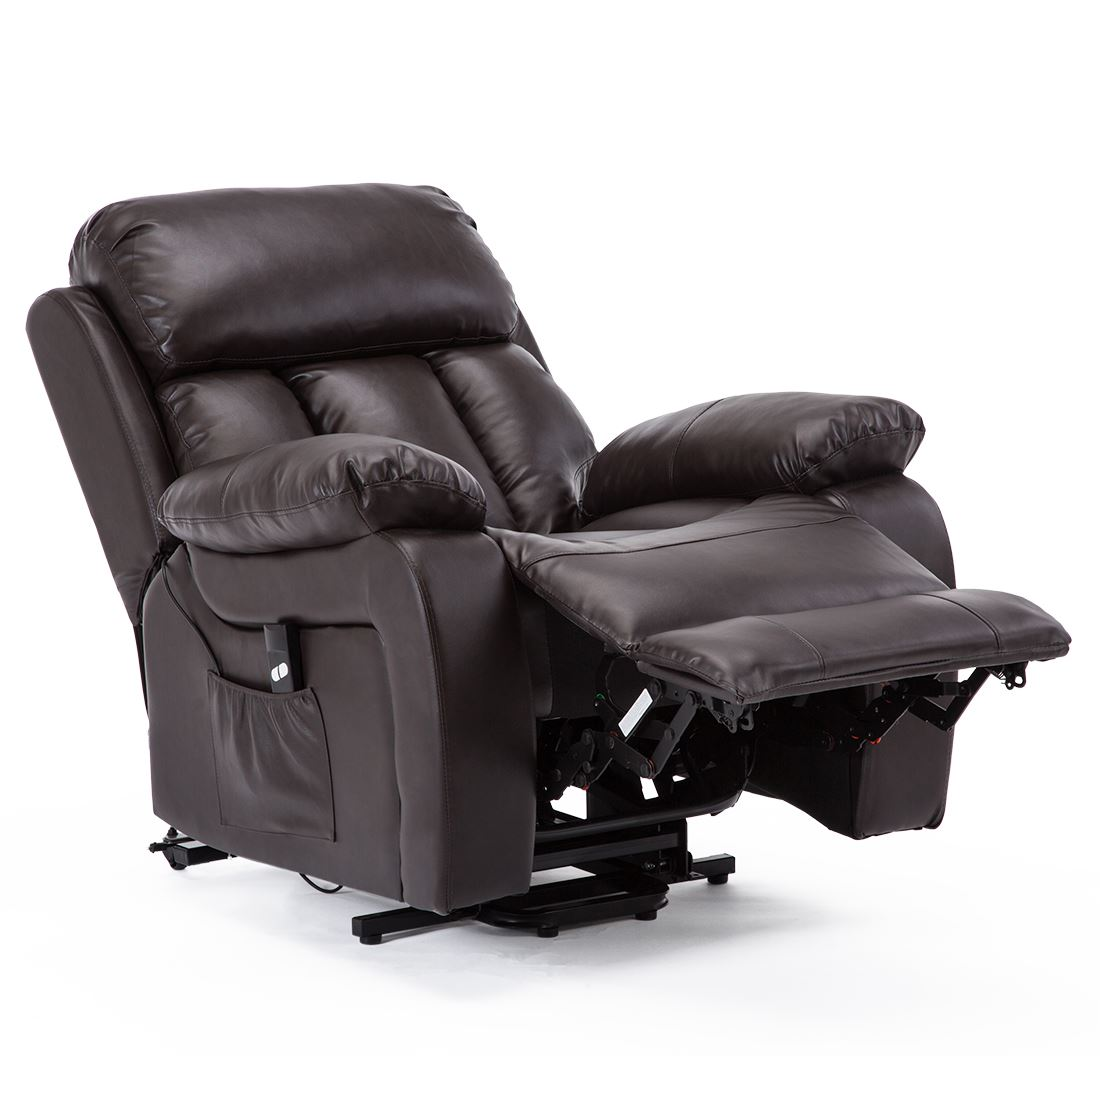 CHESTER-ELECTRIC-RISE-LEATHER-RECLINER-POWER-ARMCHAIR-HEATED-MASSAGE-SOFA-CHAIR thumbnail 13